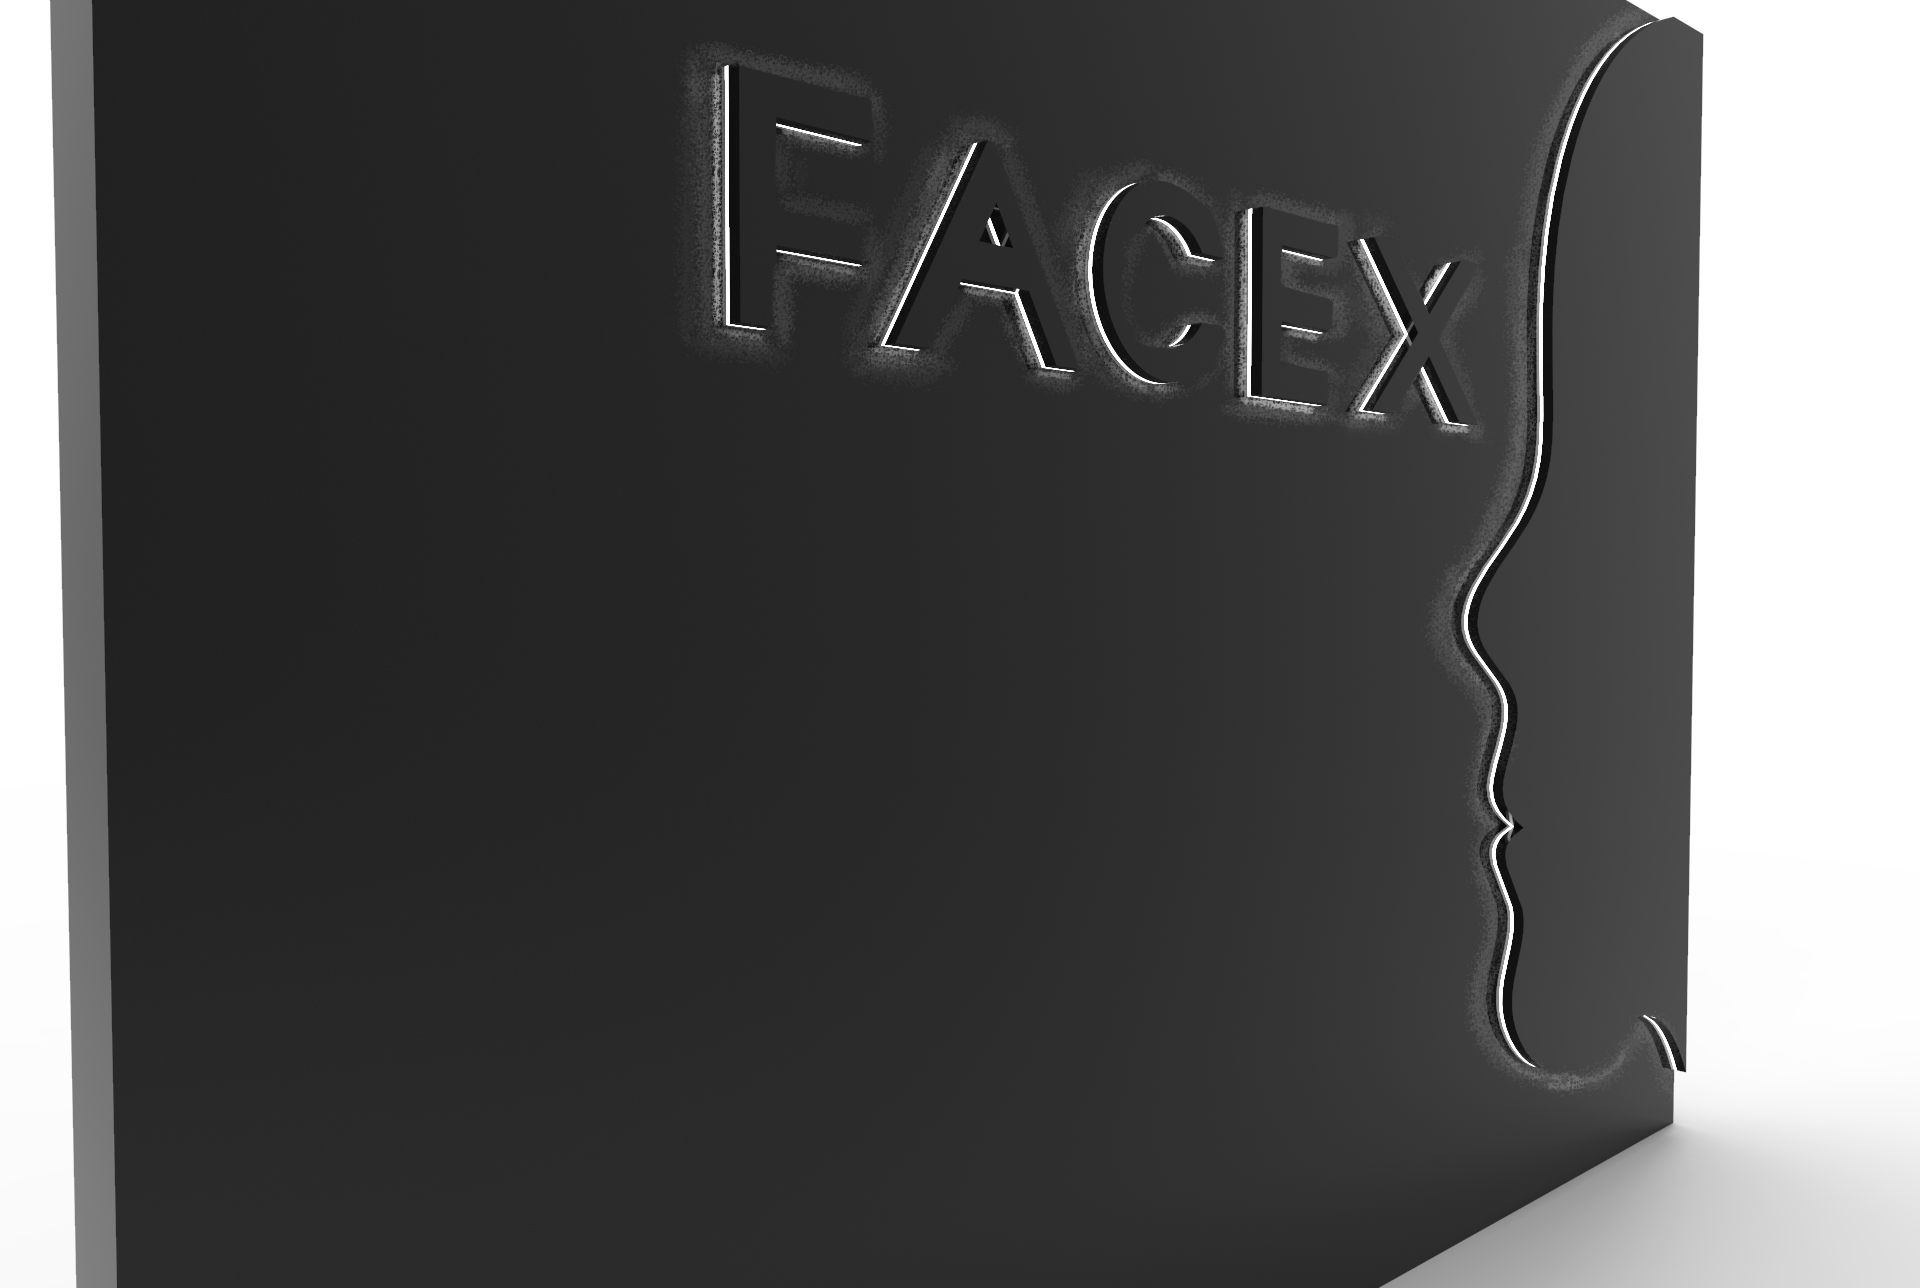 FaceX Inner wall sign